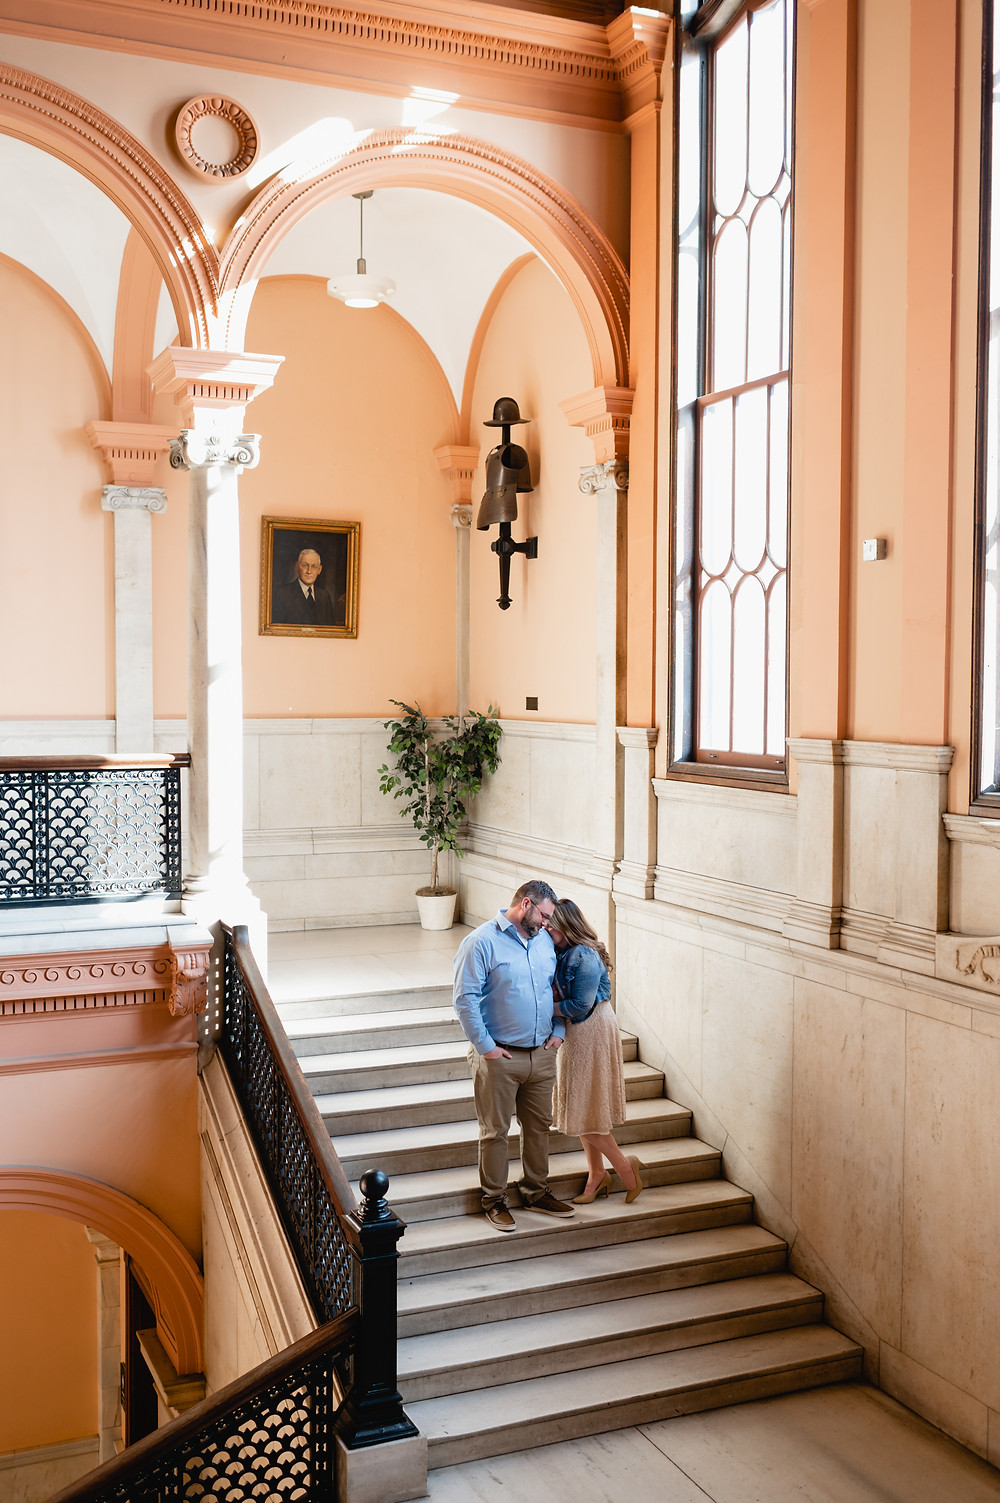 worcester city hall architecture with couple posing on stairs for elopement